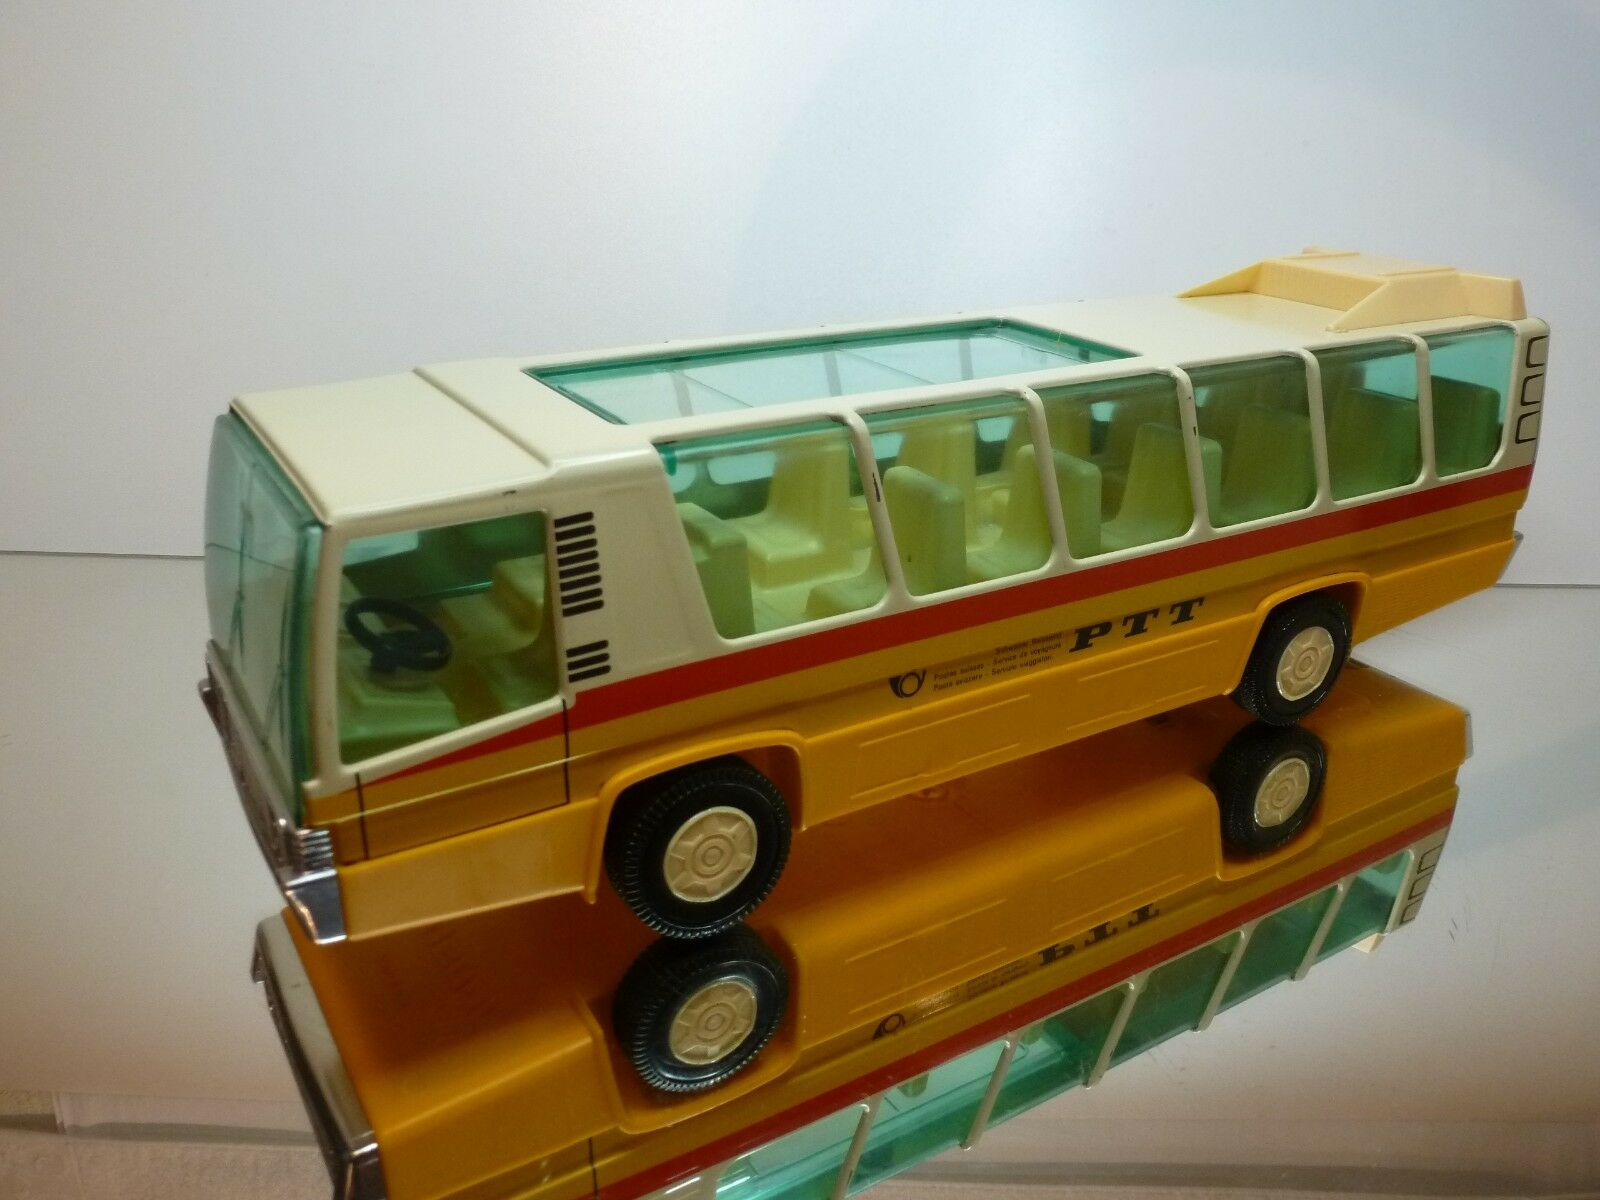 JOUSTRA AUTOBUS PTT SWITZERLAND SWITZERLAND SWITZERLAND - YELLOW CREAM L39.5cm friction - GOOD CONDITION 28d607